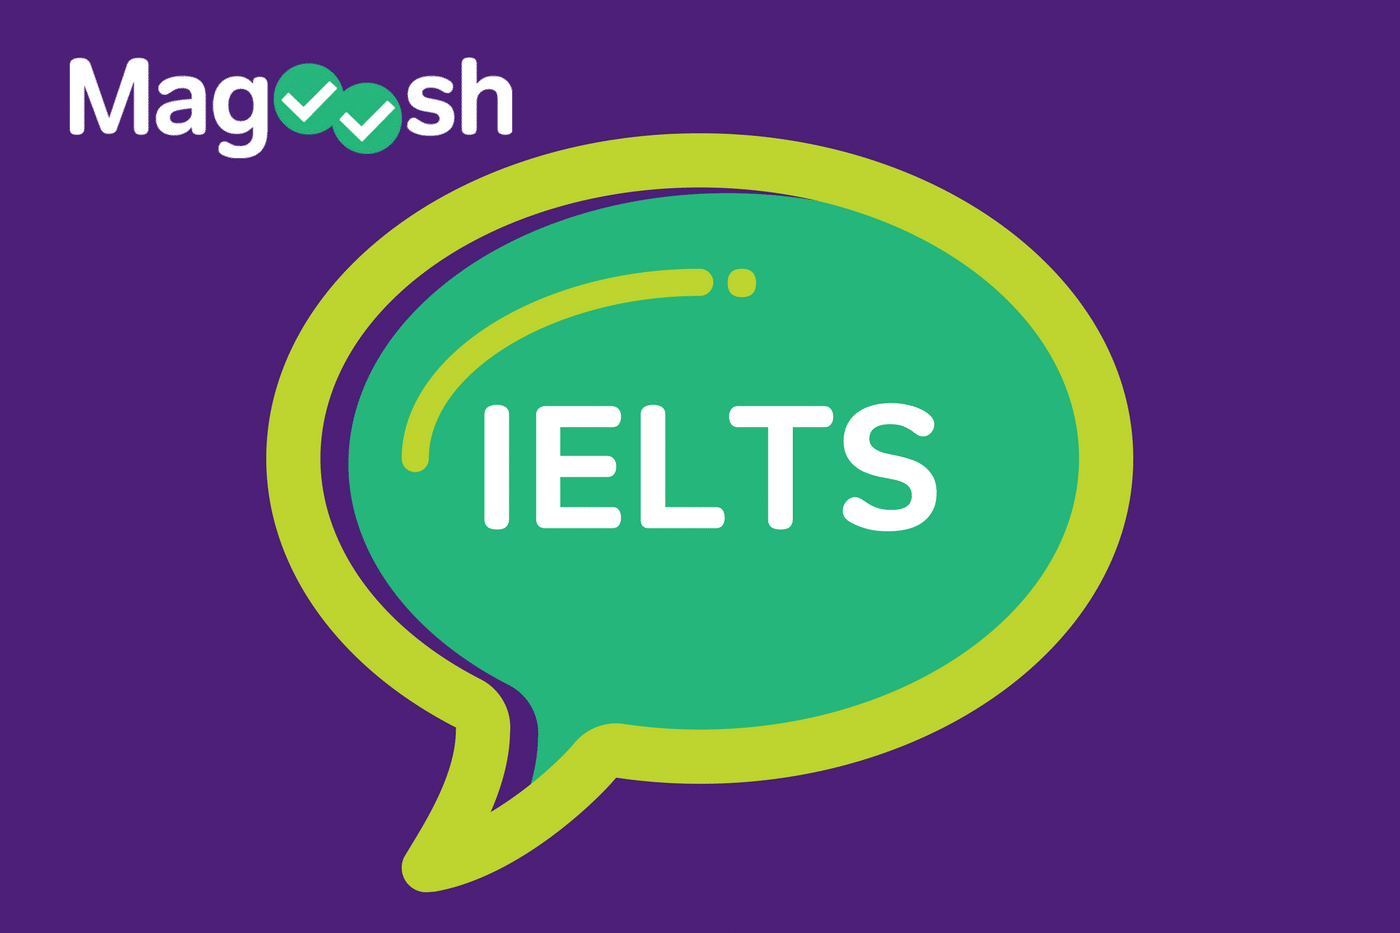 Magoosh IELTS Podcast